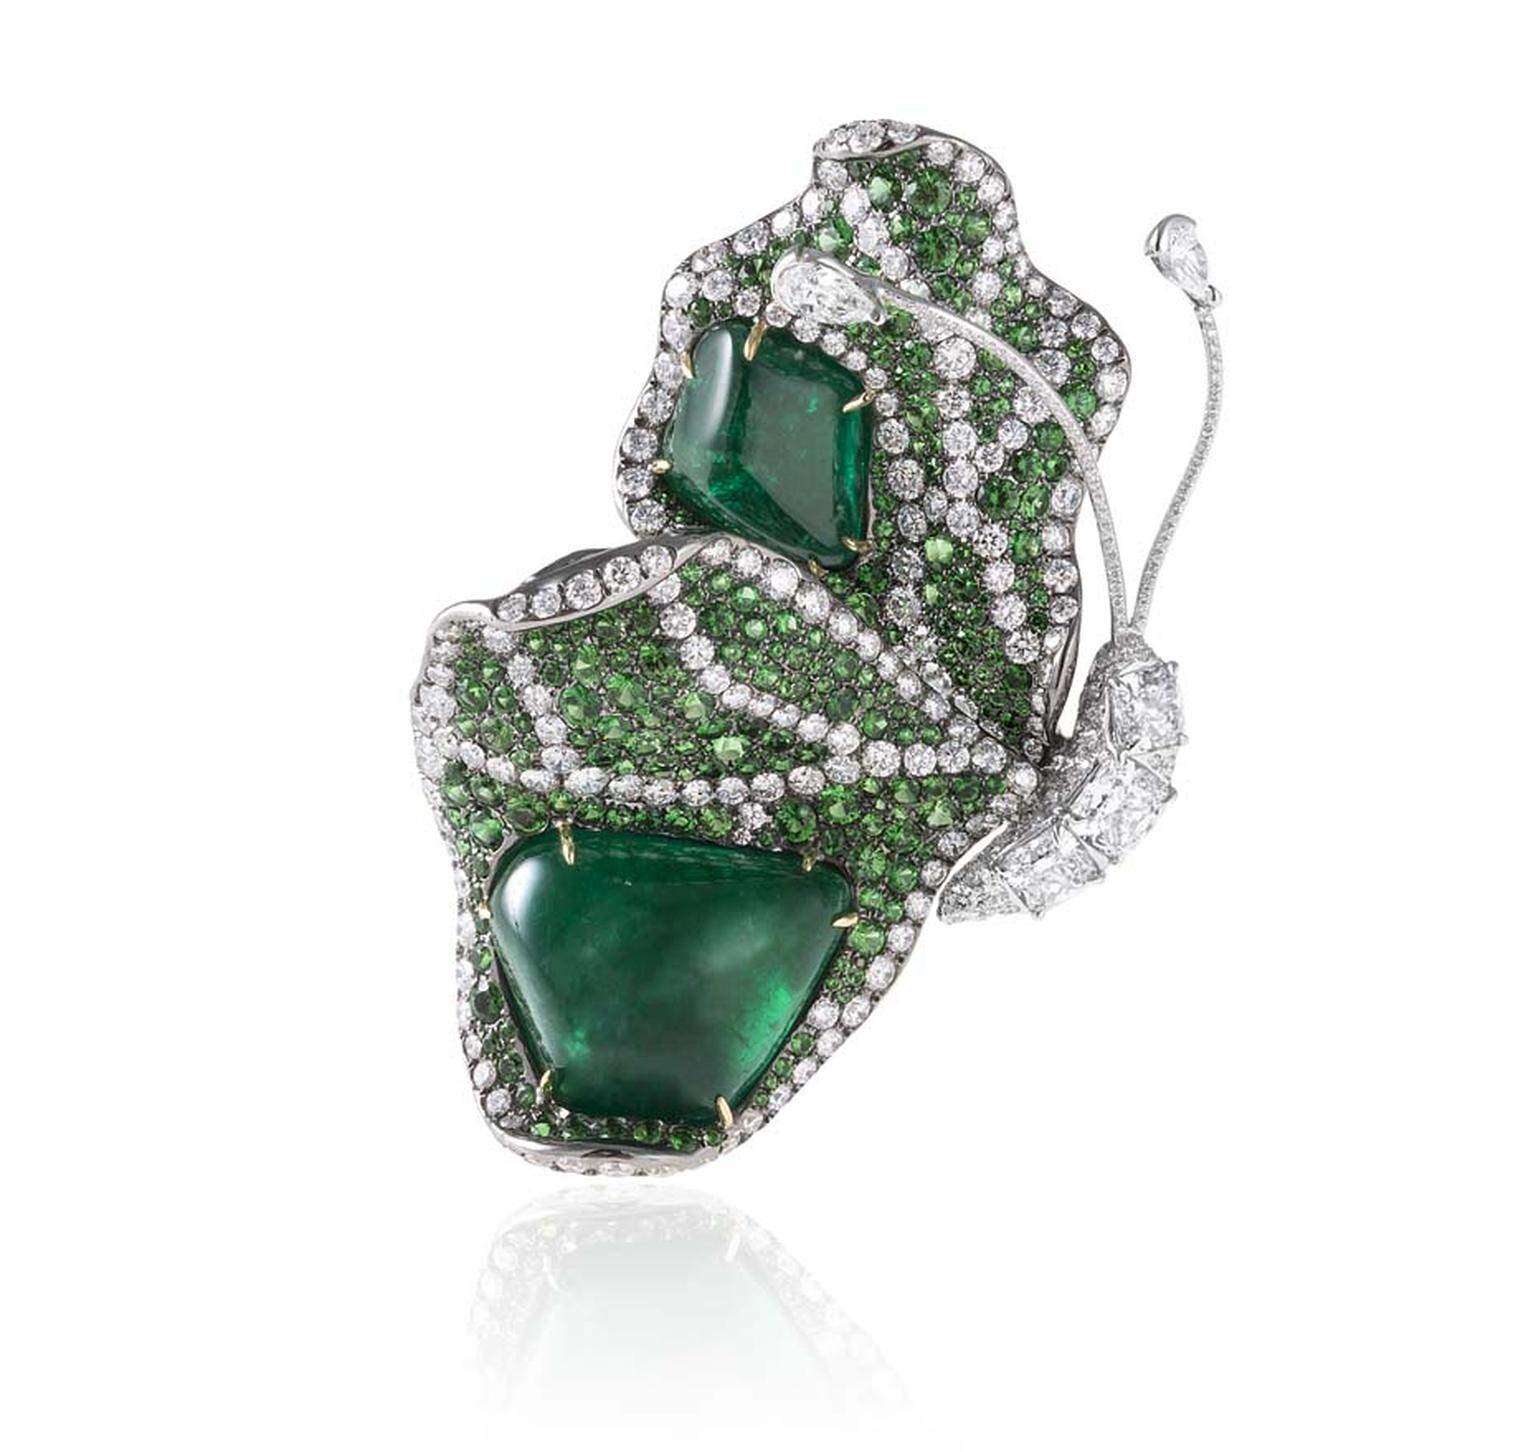 Cindy Chao 10th anniversary White Label collection Butterfly brooch in white gold with emeralds, tsavorites and diamonds.